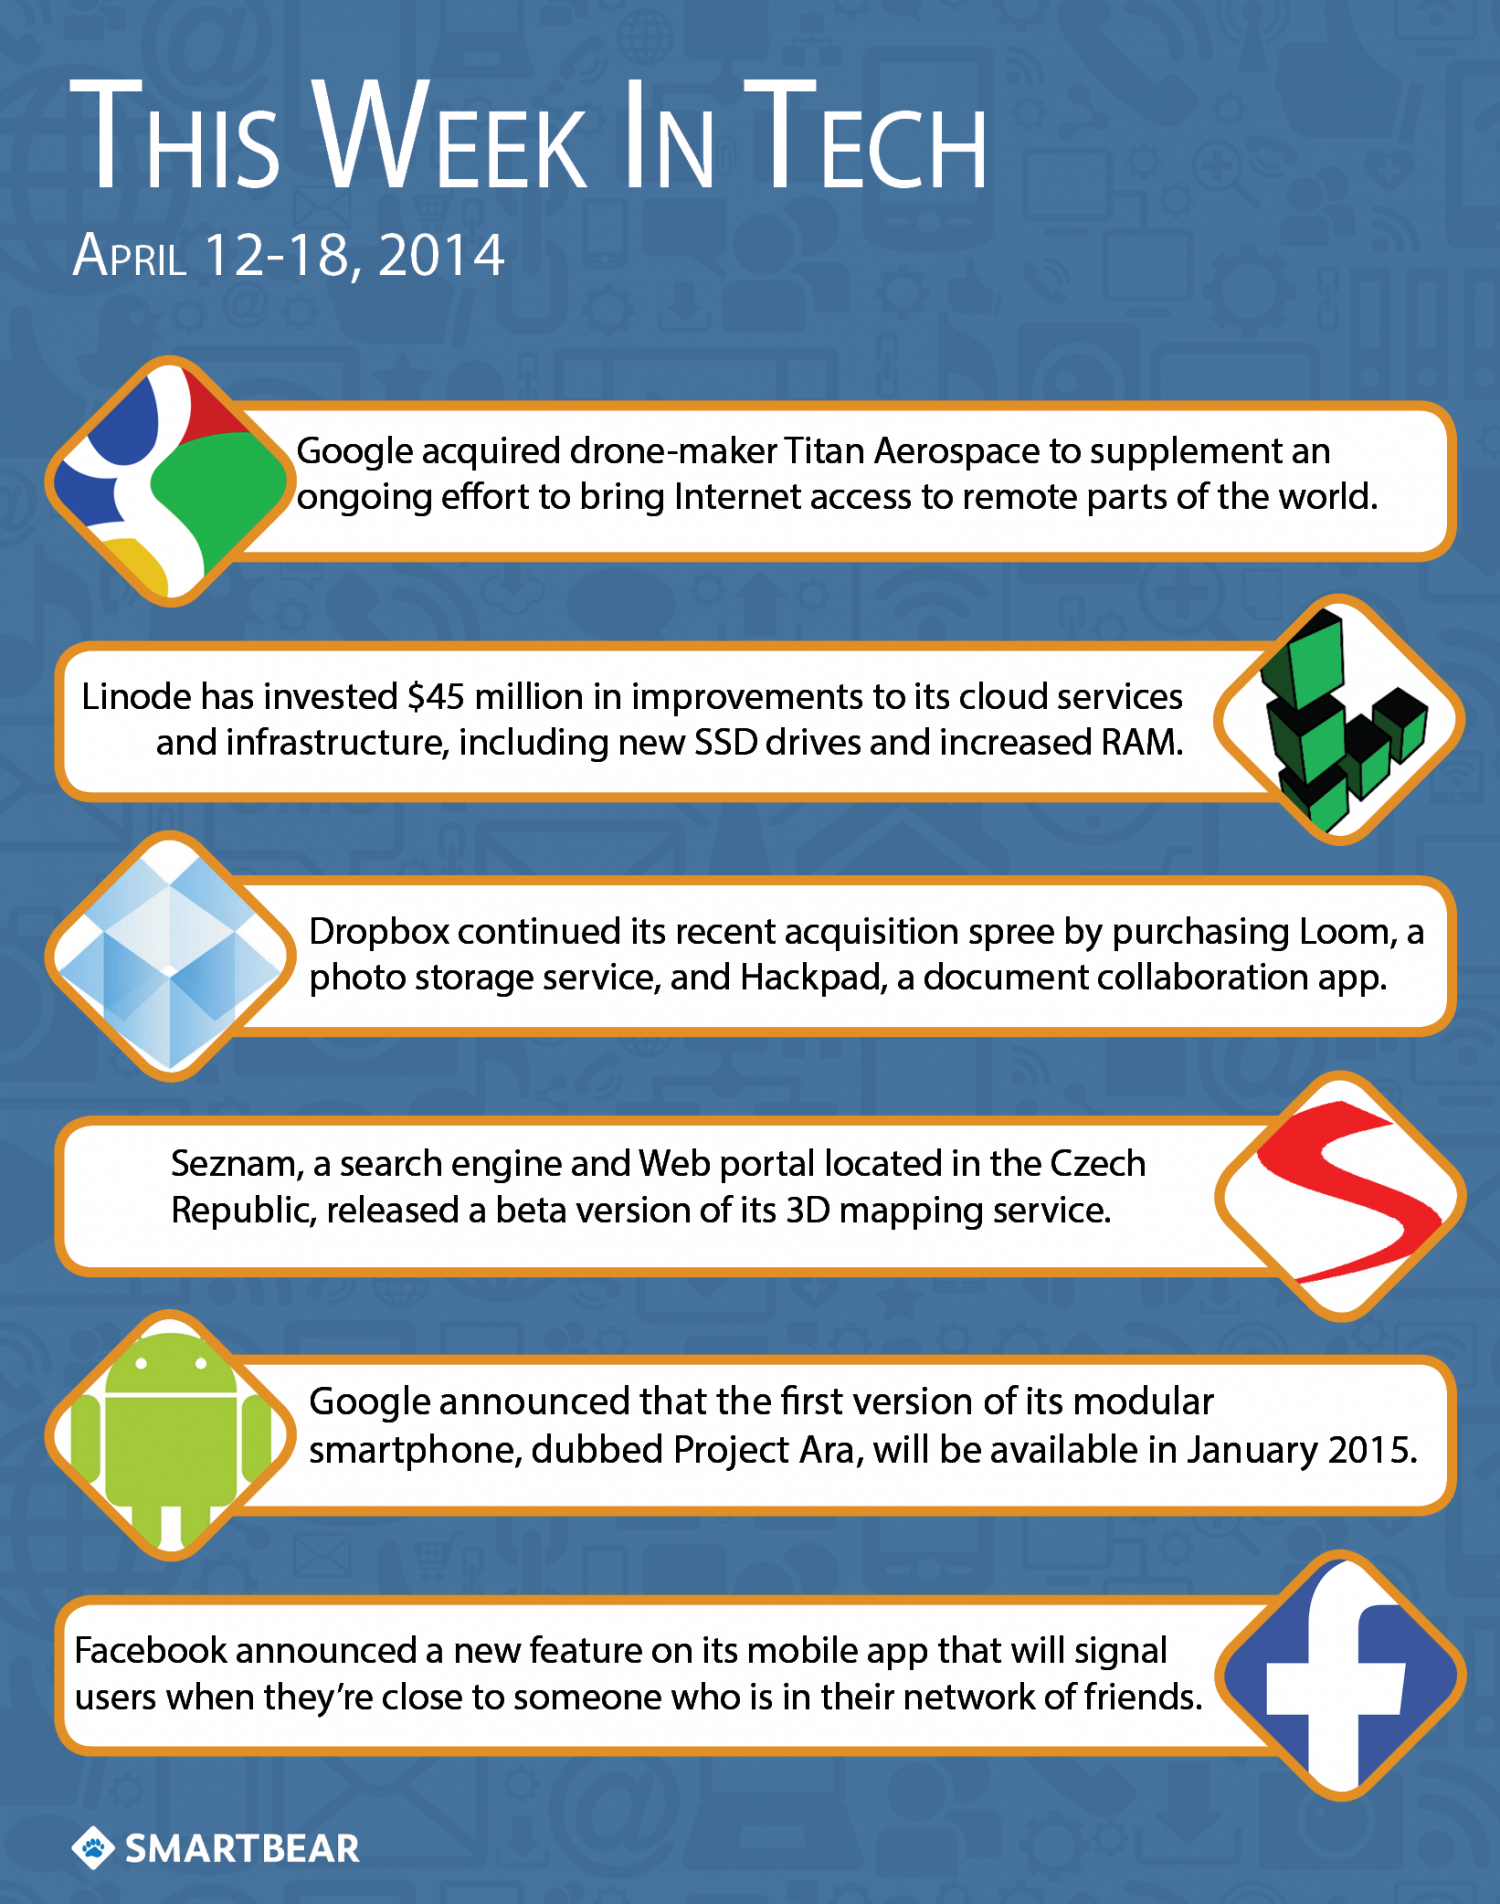 This Week in Tech (April 12-18) Infographic